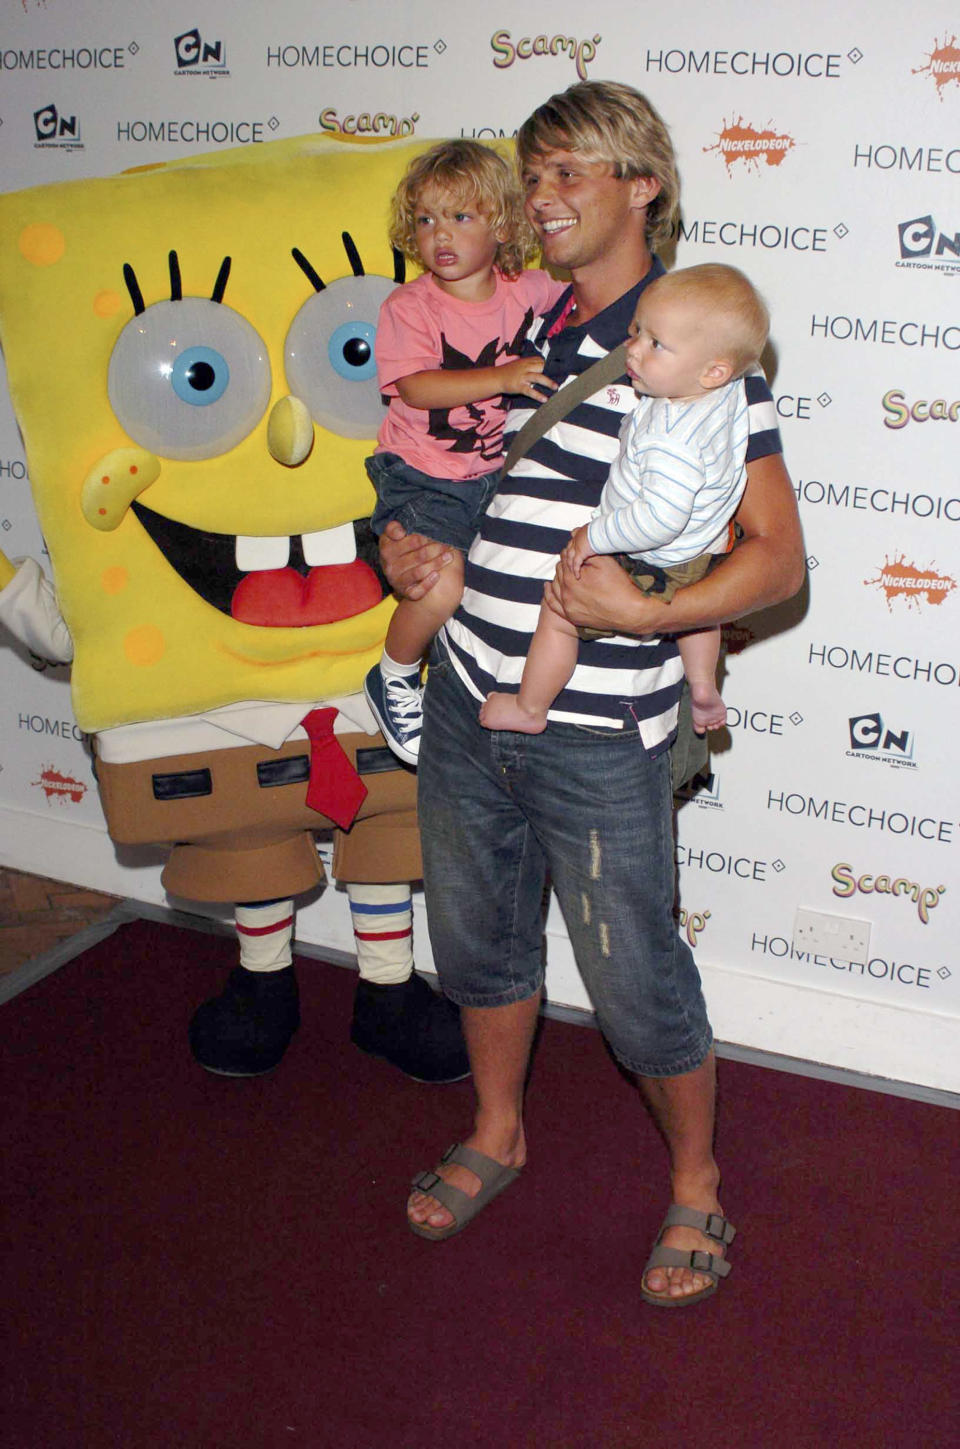 Jeff Brazier and his sons Bobby Jack (L) and Freddie (R) attend the HomeChoice Enchanted Wood Tea Party at The Music Room on July 20, 2005 in London, England.  (Photo by Chris Harding/Getty Images)